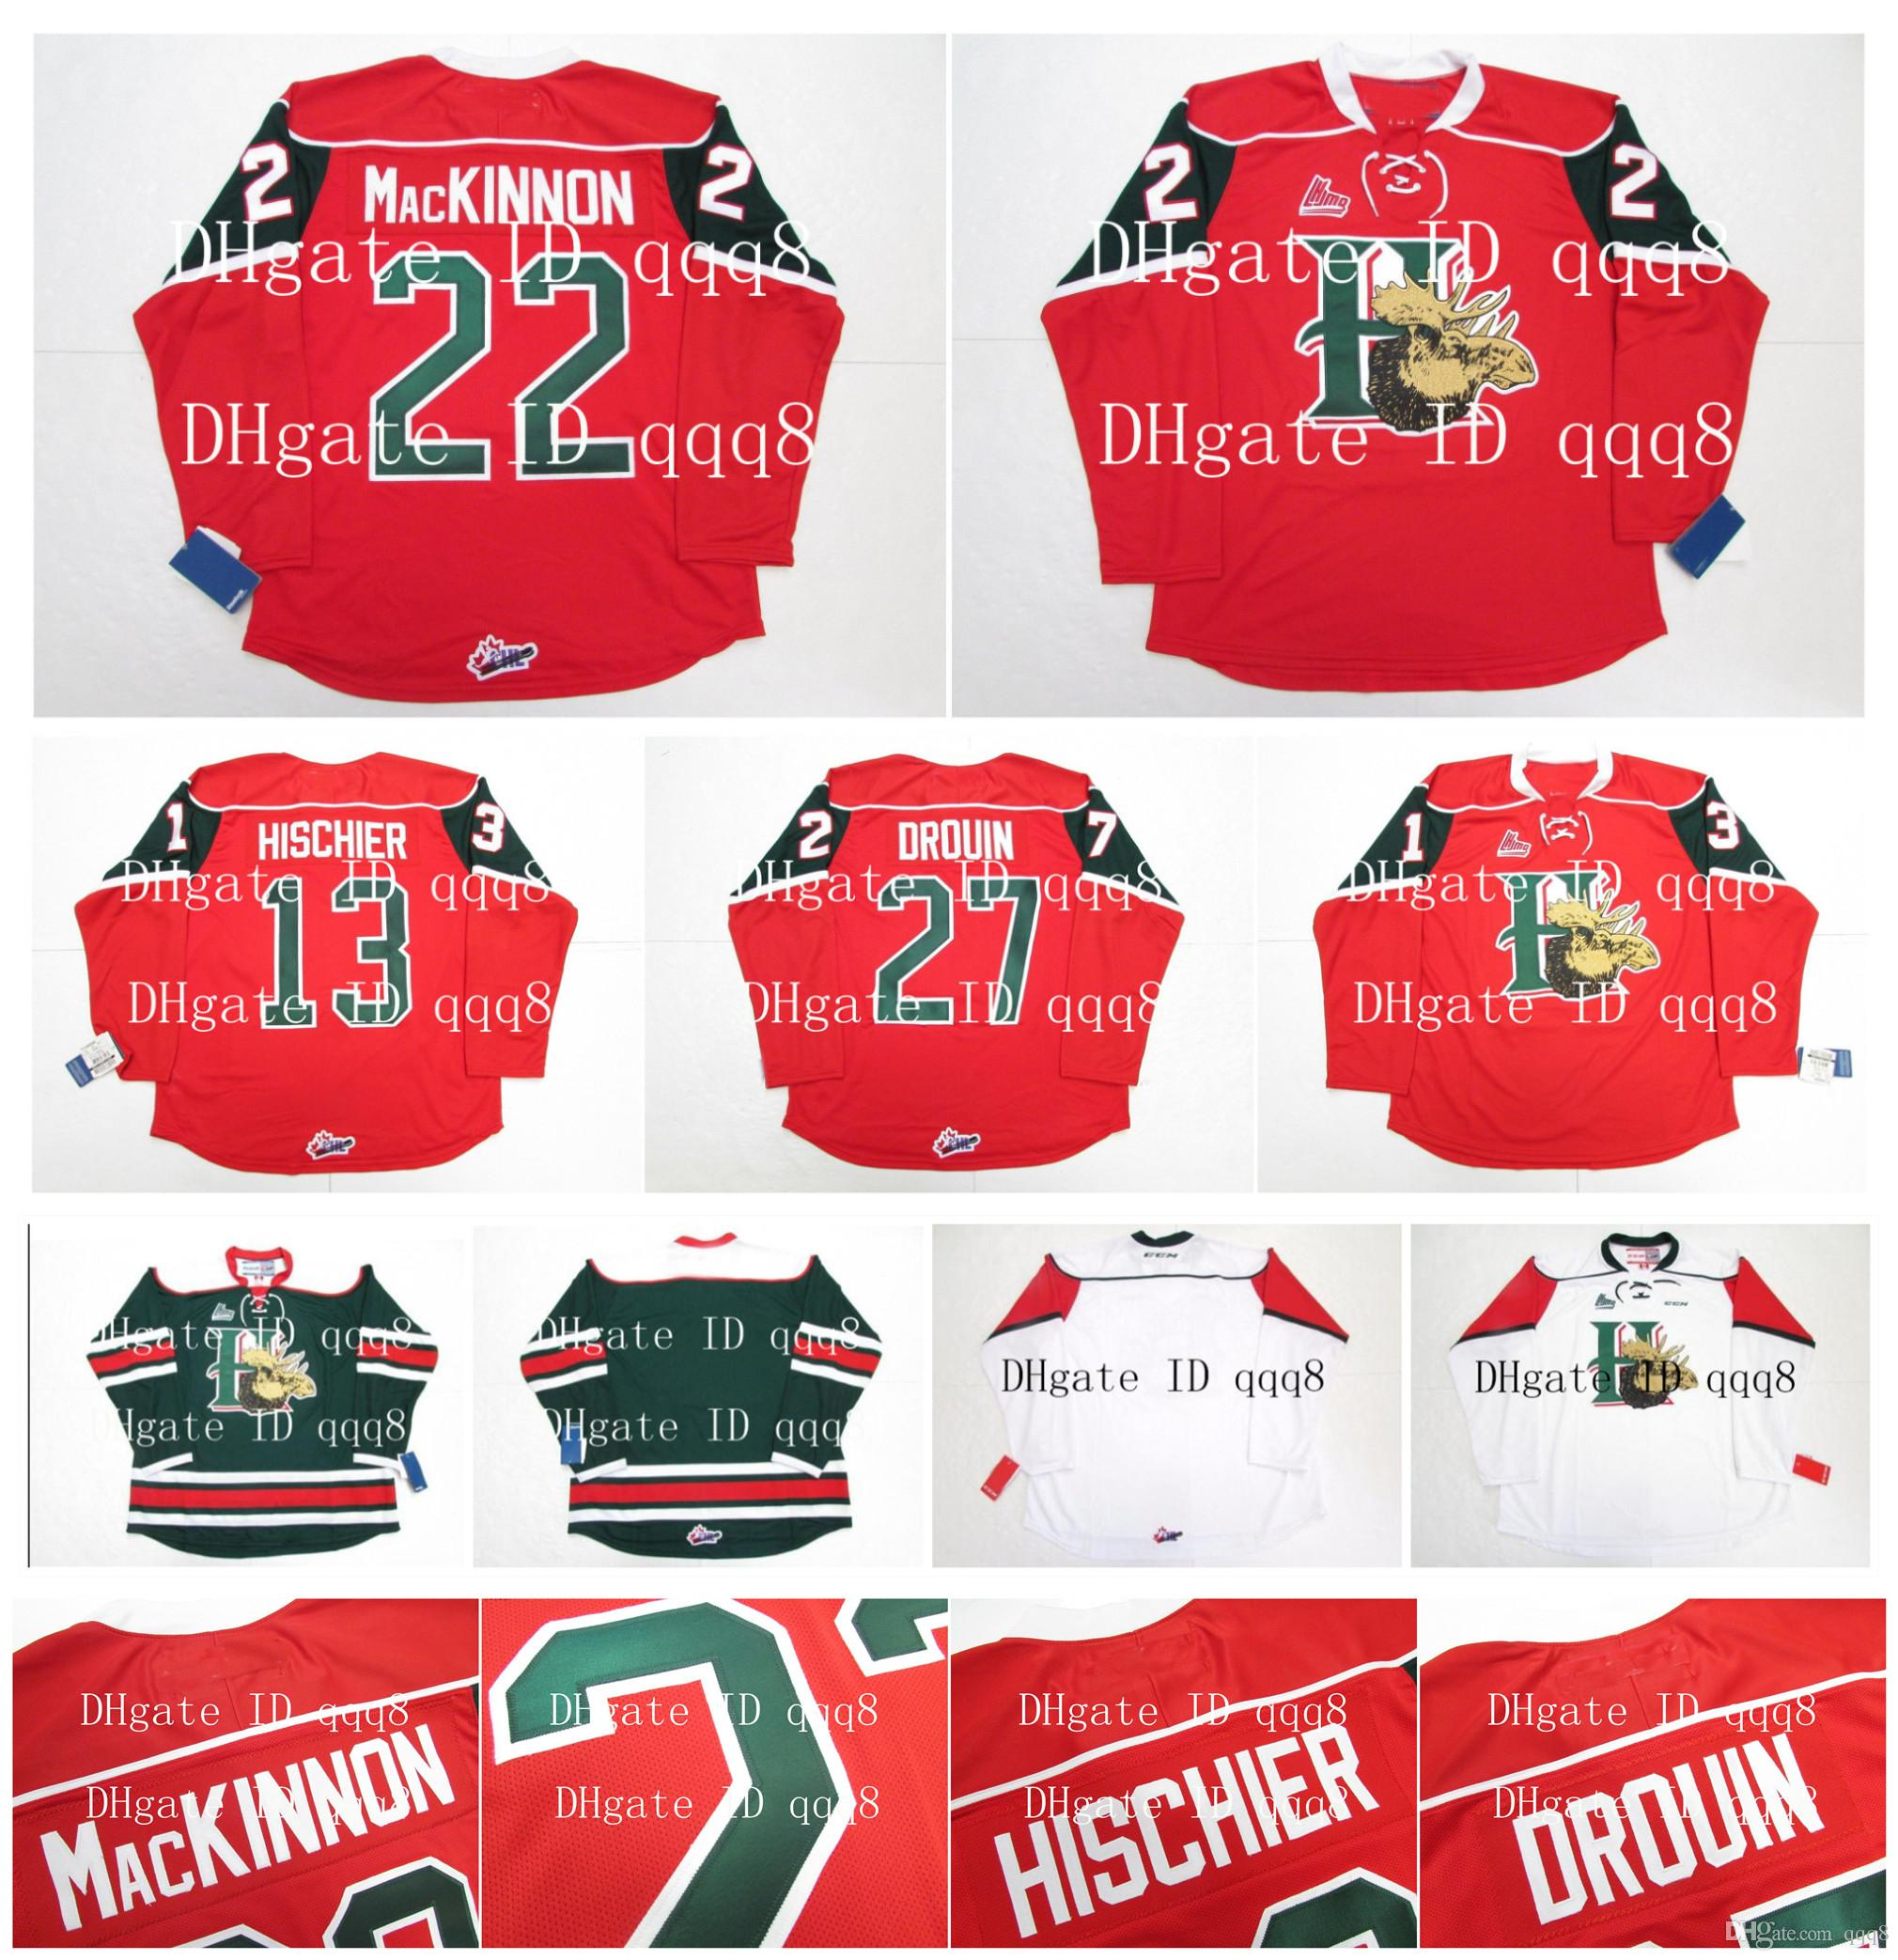 QMJHL Halifax Mooseheads 유니폼 22 NATHAN MacKinNON 13 니코 허쉬 27 조나단 드로 인 레드 화이트 Green100 % Stitching Custom Hockey Jerseys